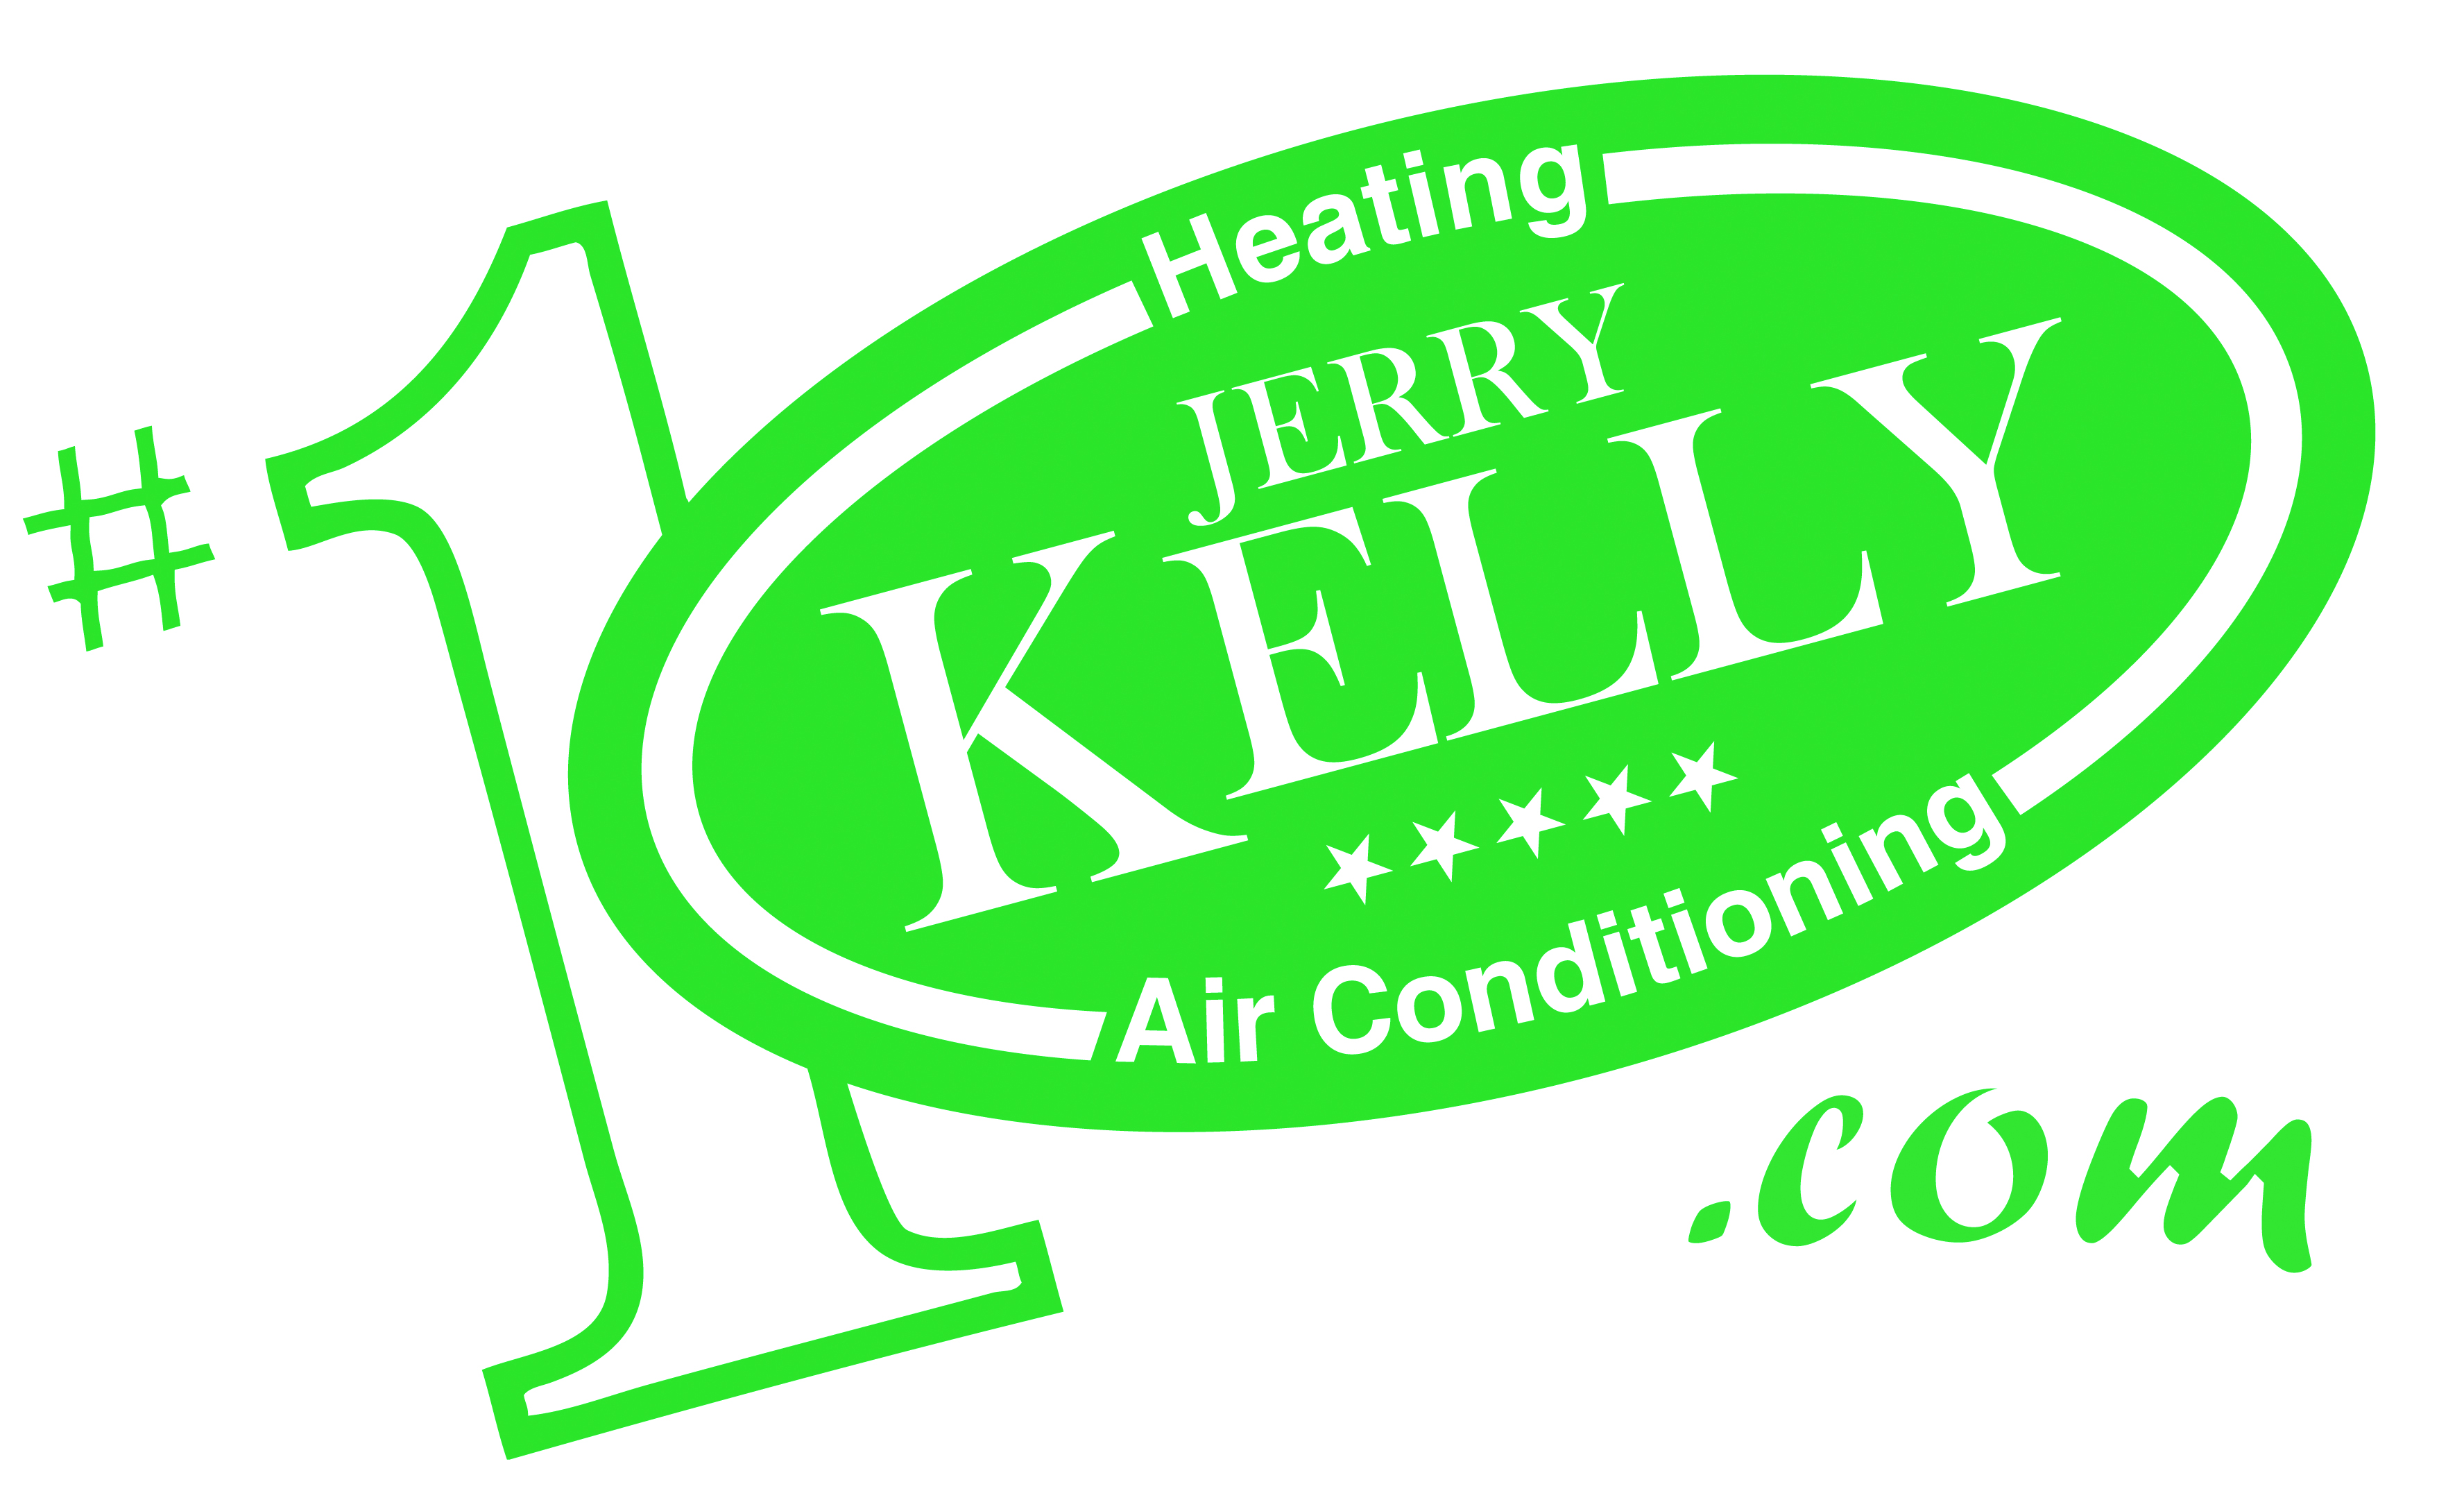 D2. Jerry Kelly (Gold)